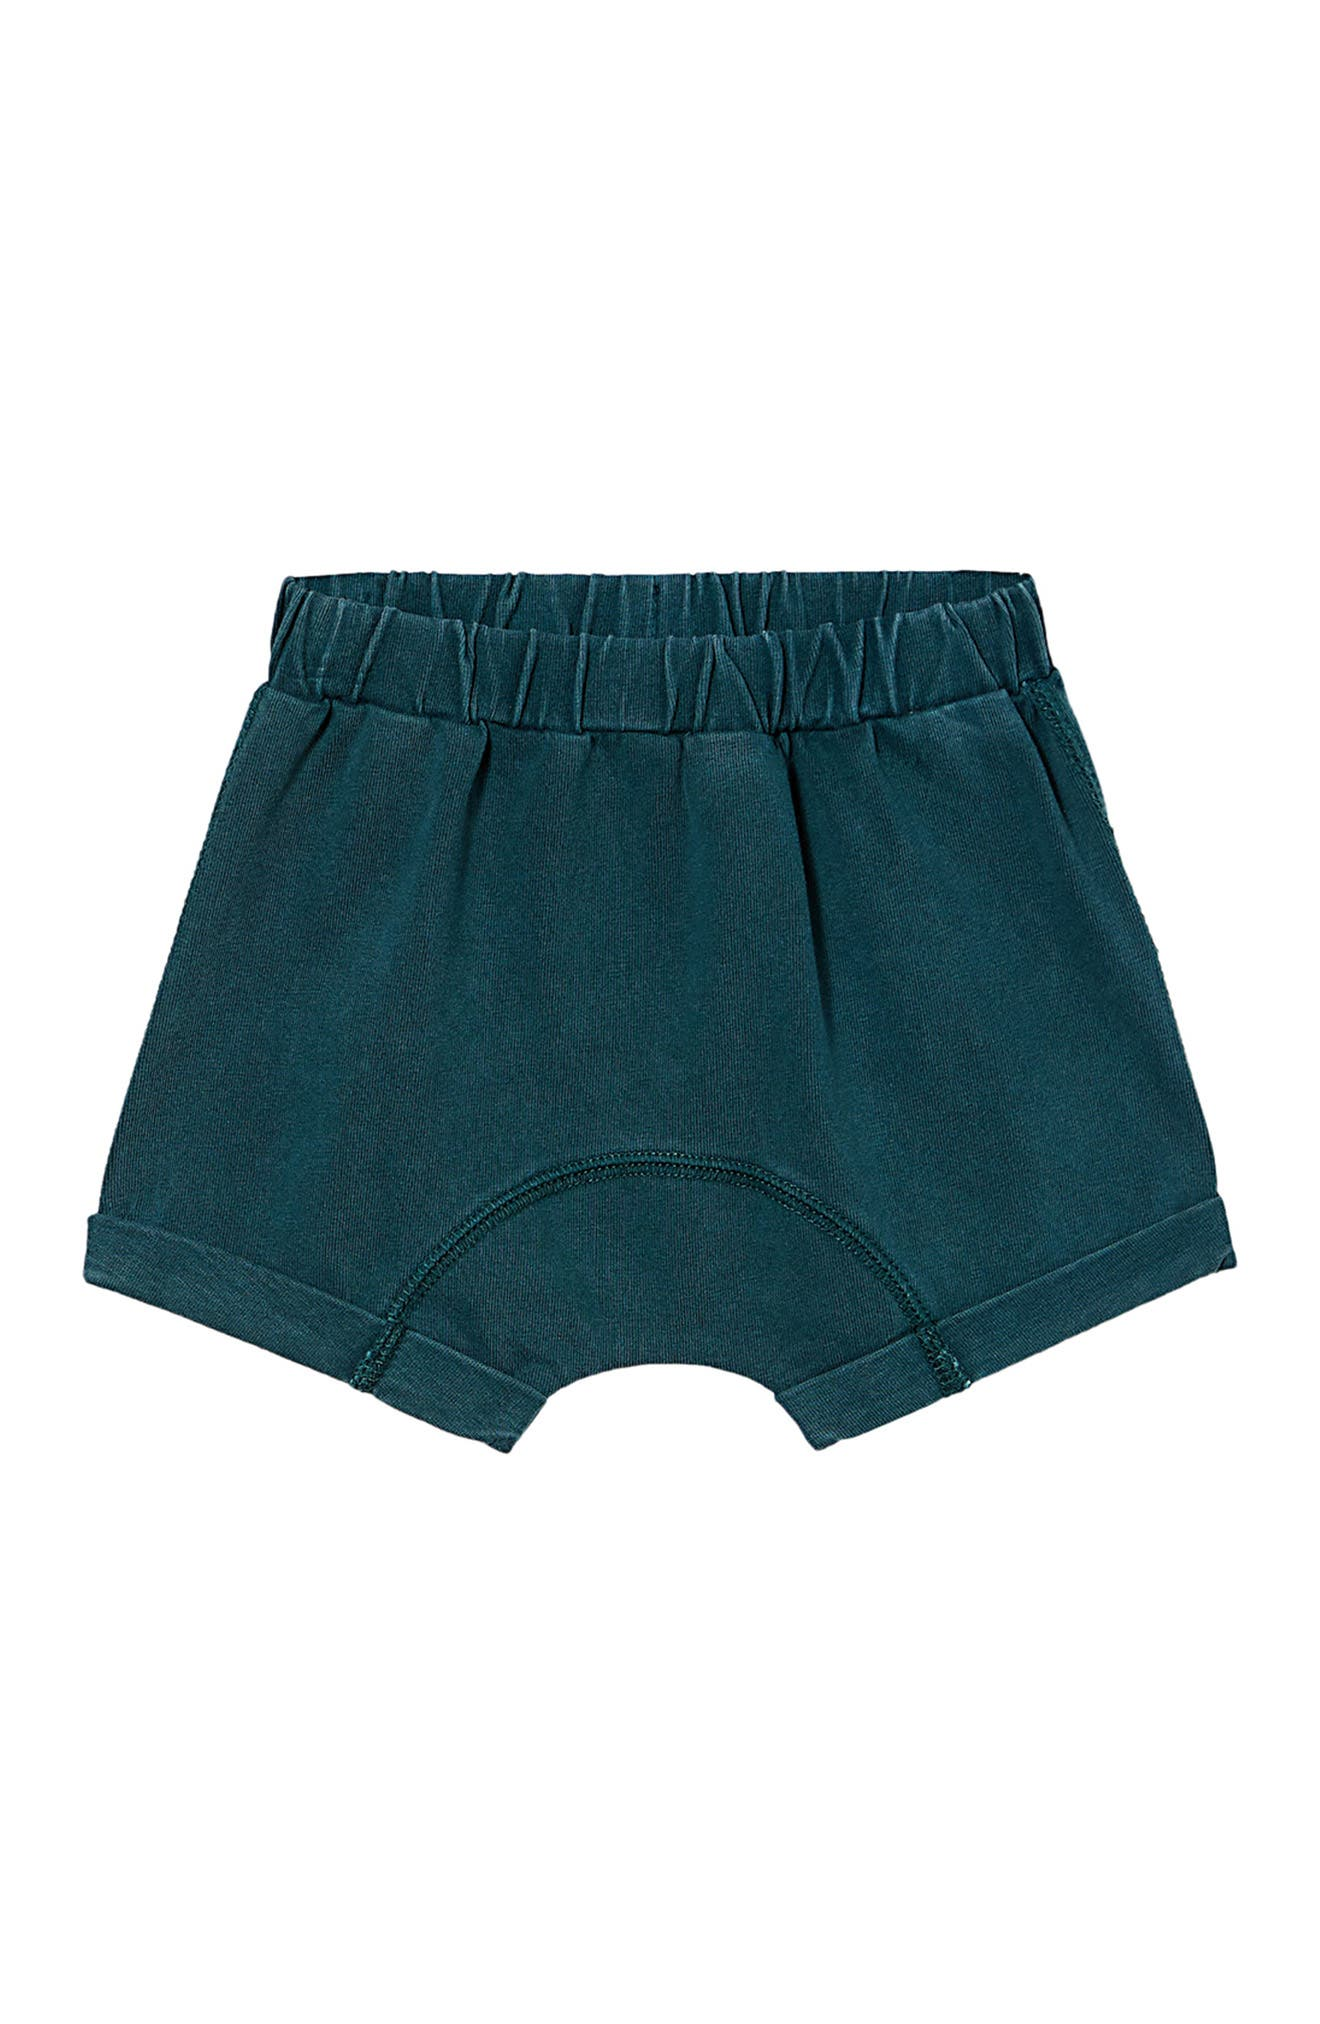 Image of Cotton On Shelby Shorts